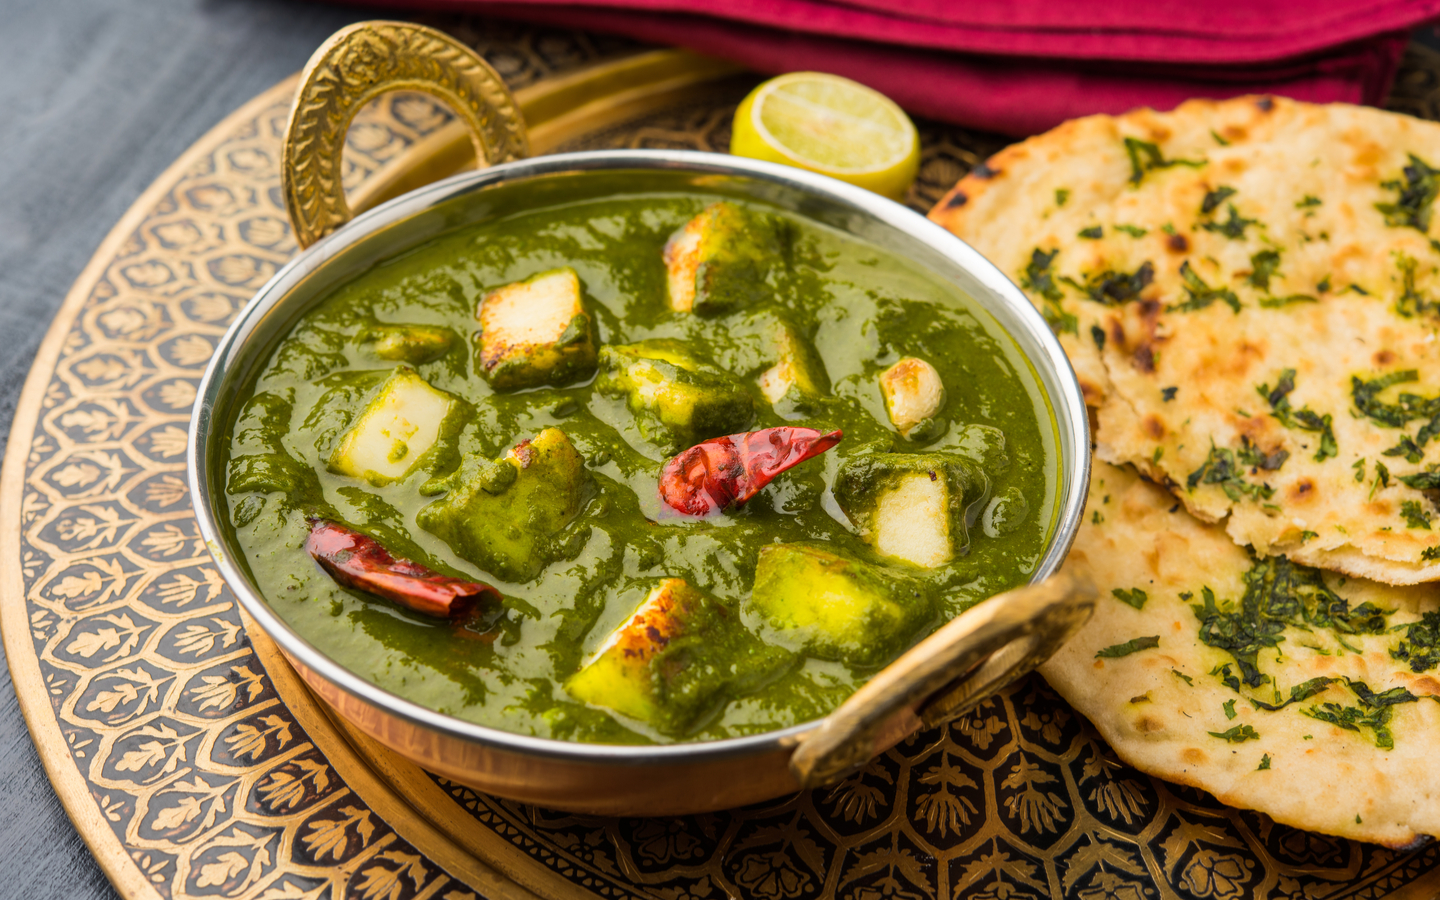 Palak Paneer served with naan